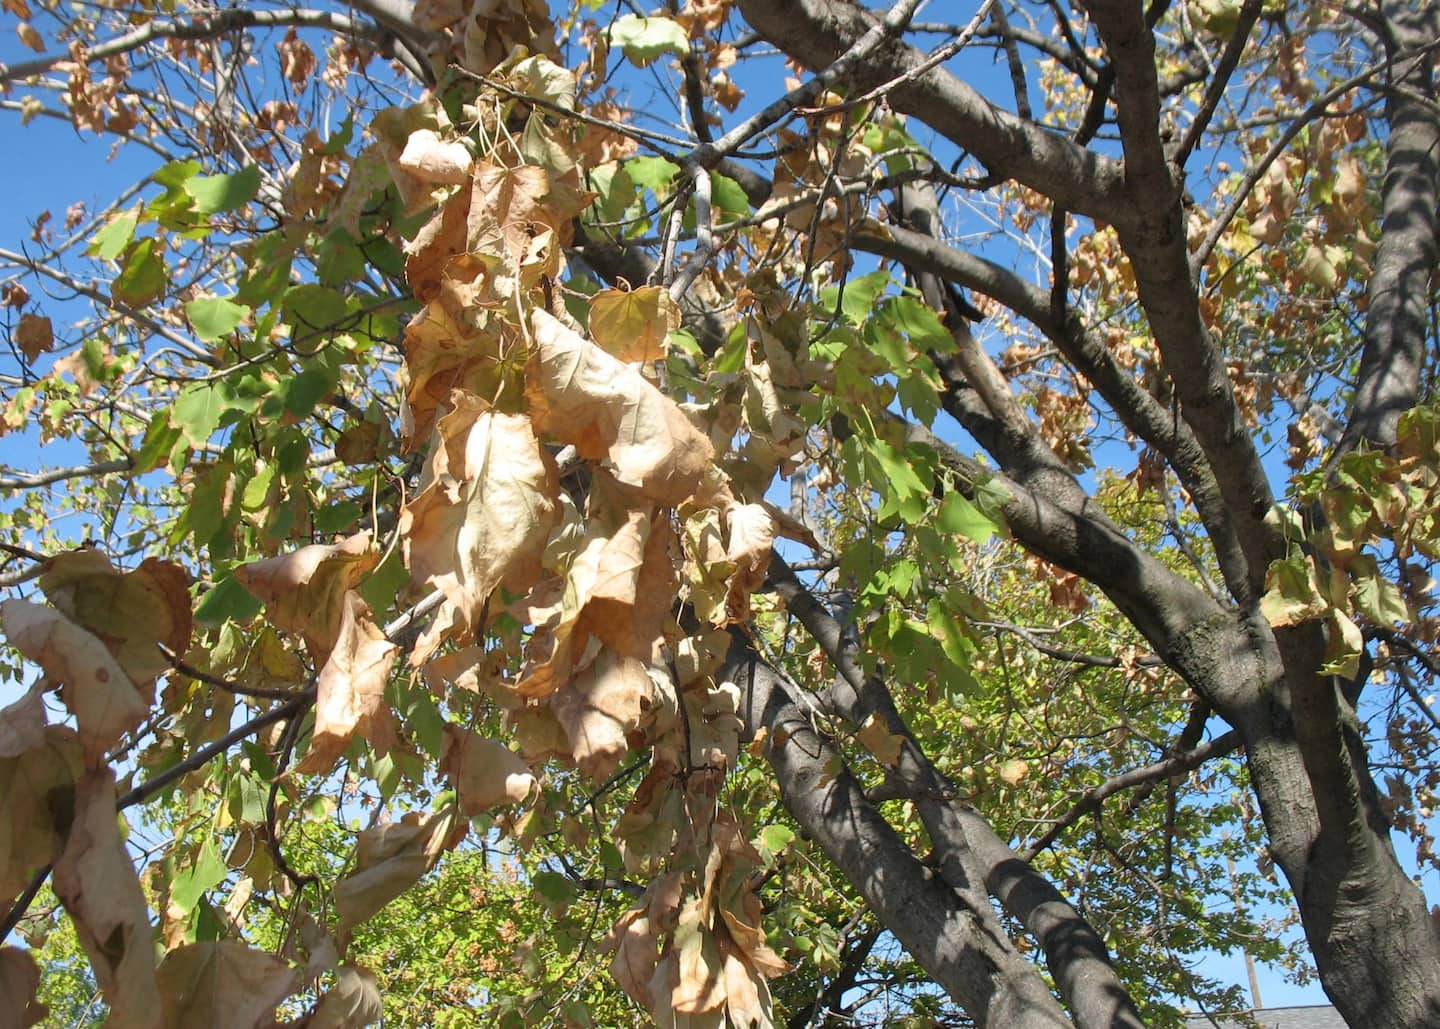 A tree will shed its leaves prematurely when it doesn't have enought water to support them. (Photo by Mike LaFollette)